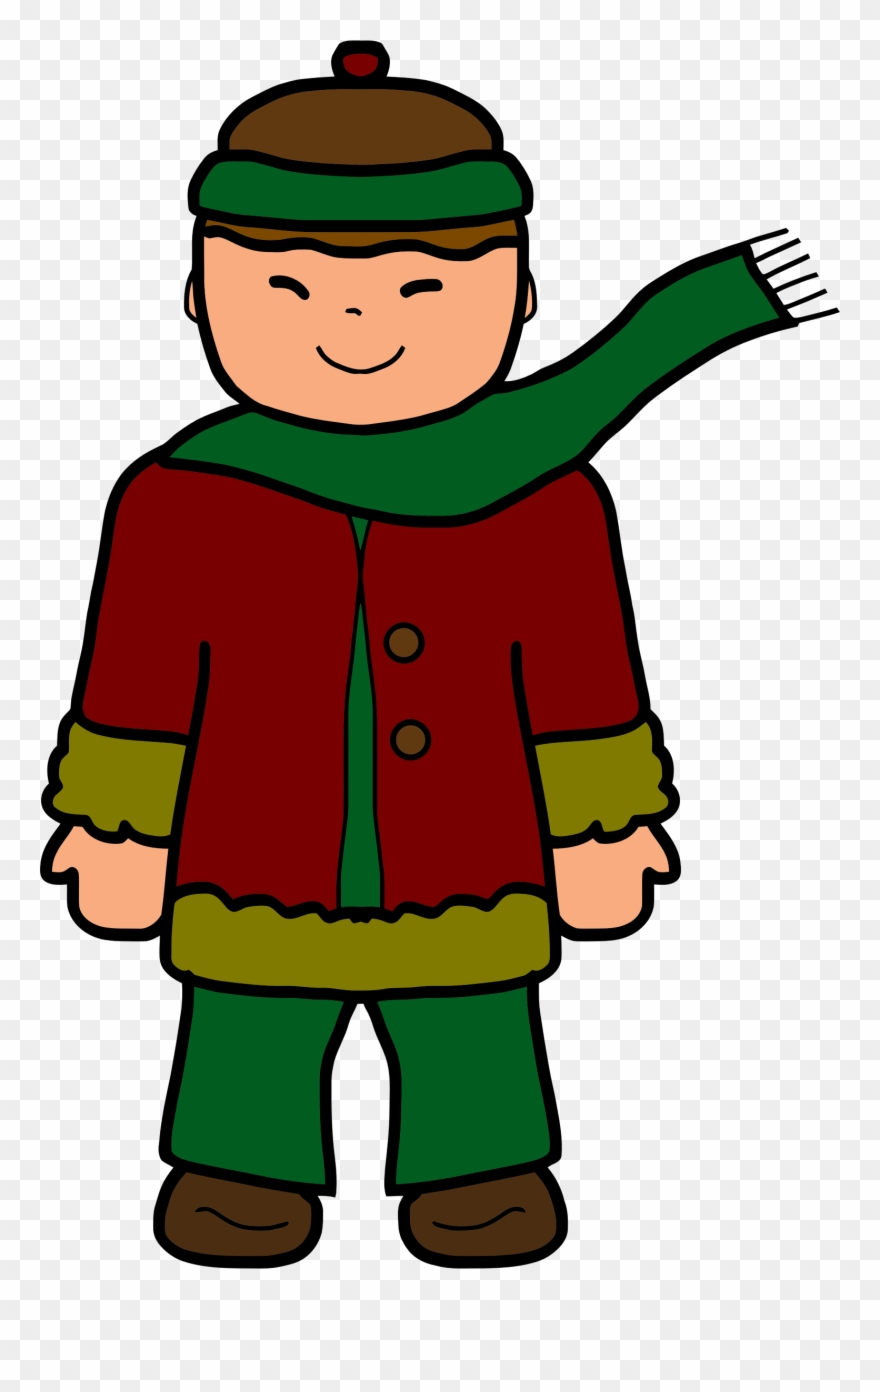 Diner kid in clothes. Winter clipart boy